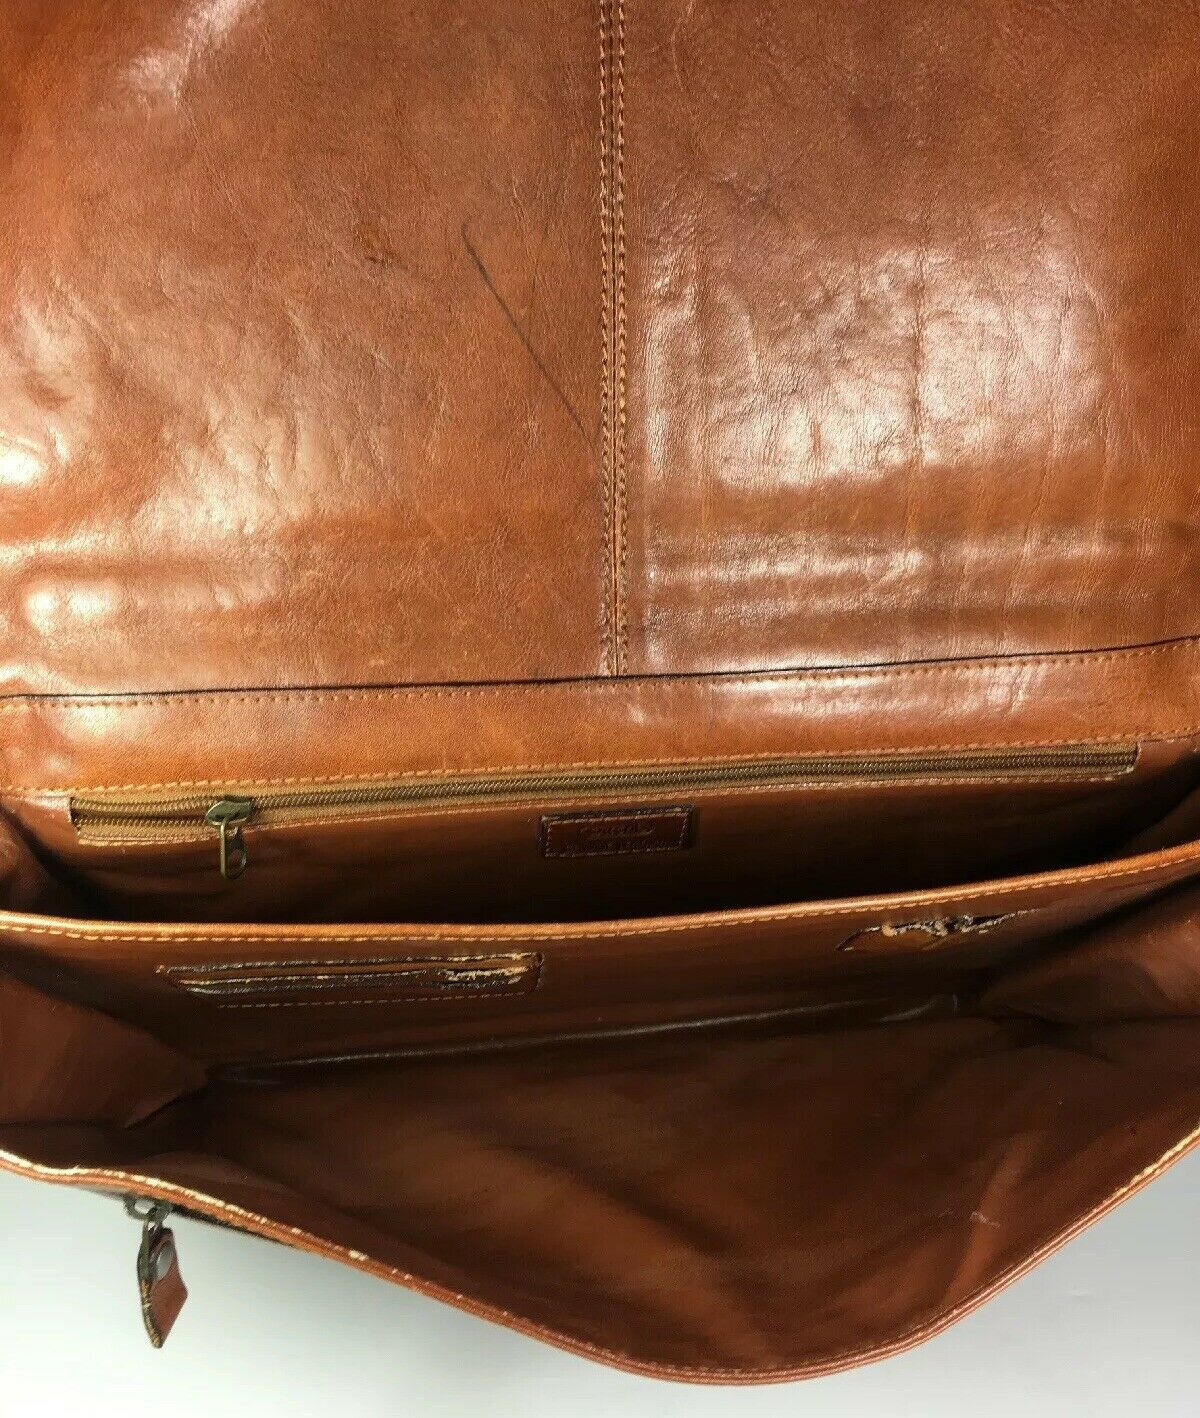 Satchi Vintage Brown Leather Briefcase- Distressed- Missing Strap and Buckles